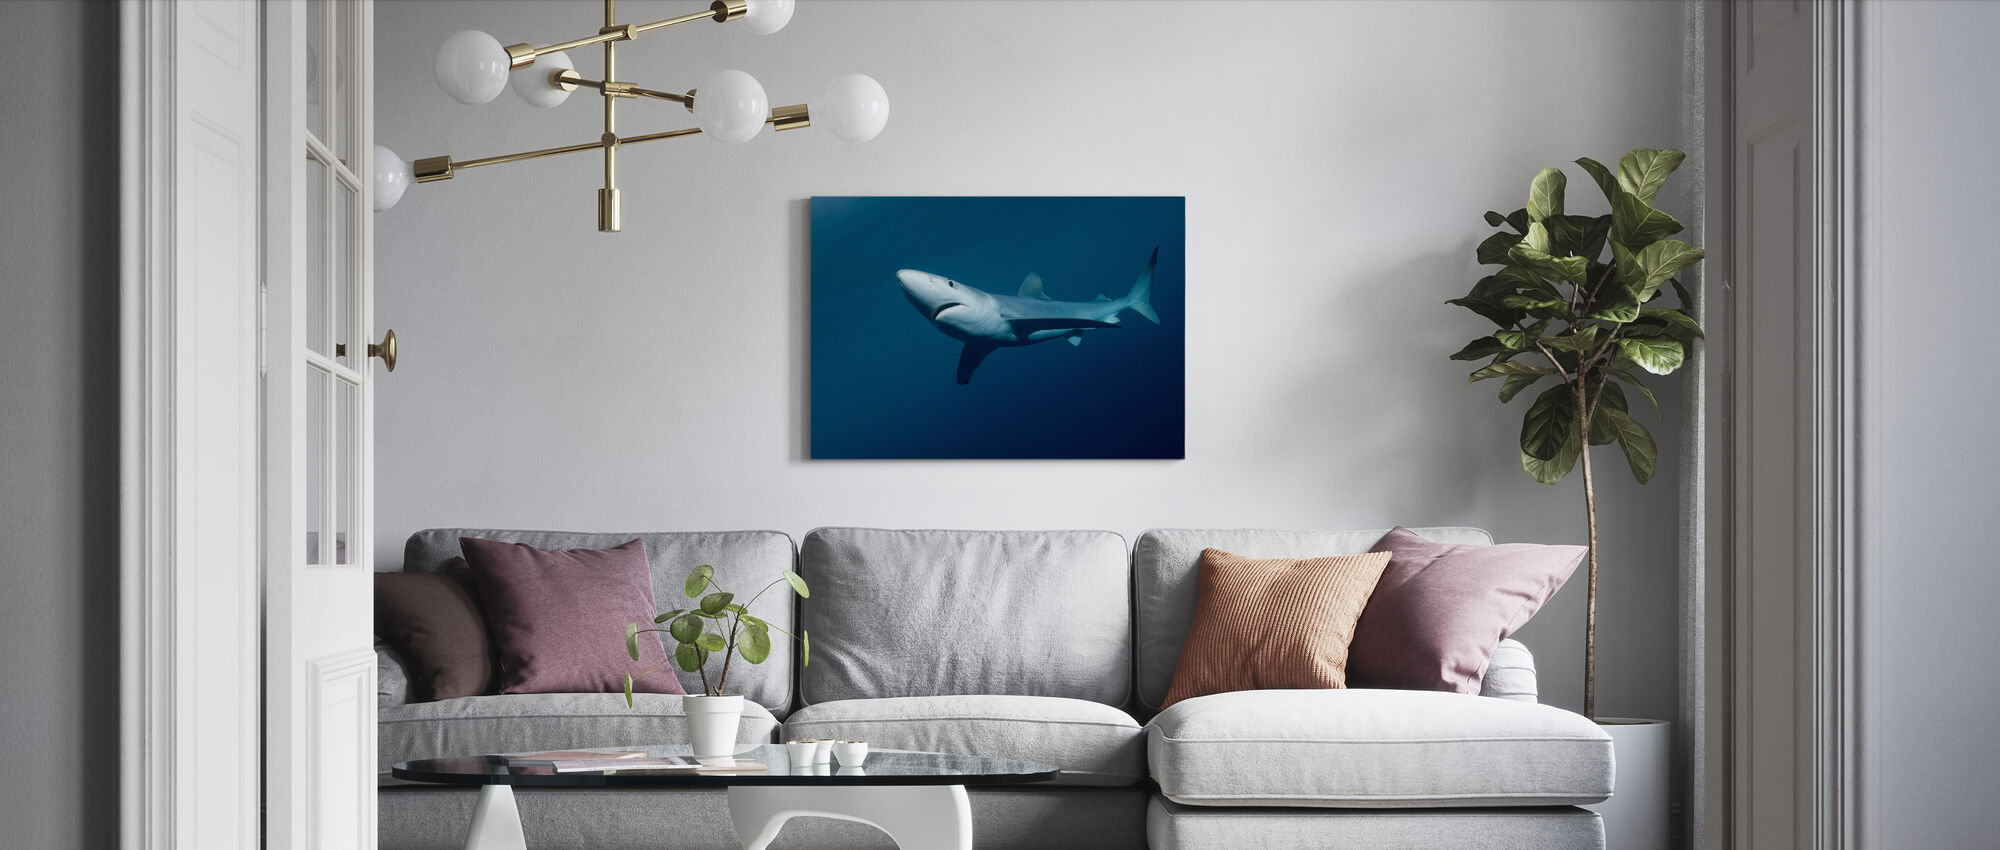 Blue Shark - Canvas print - Living Room